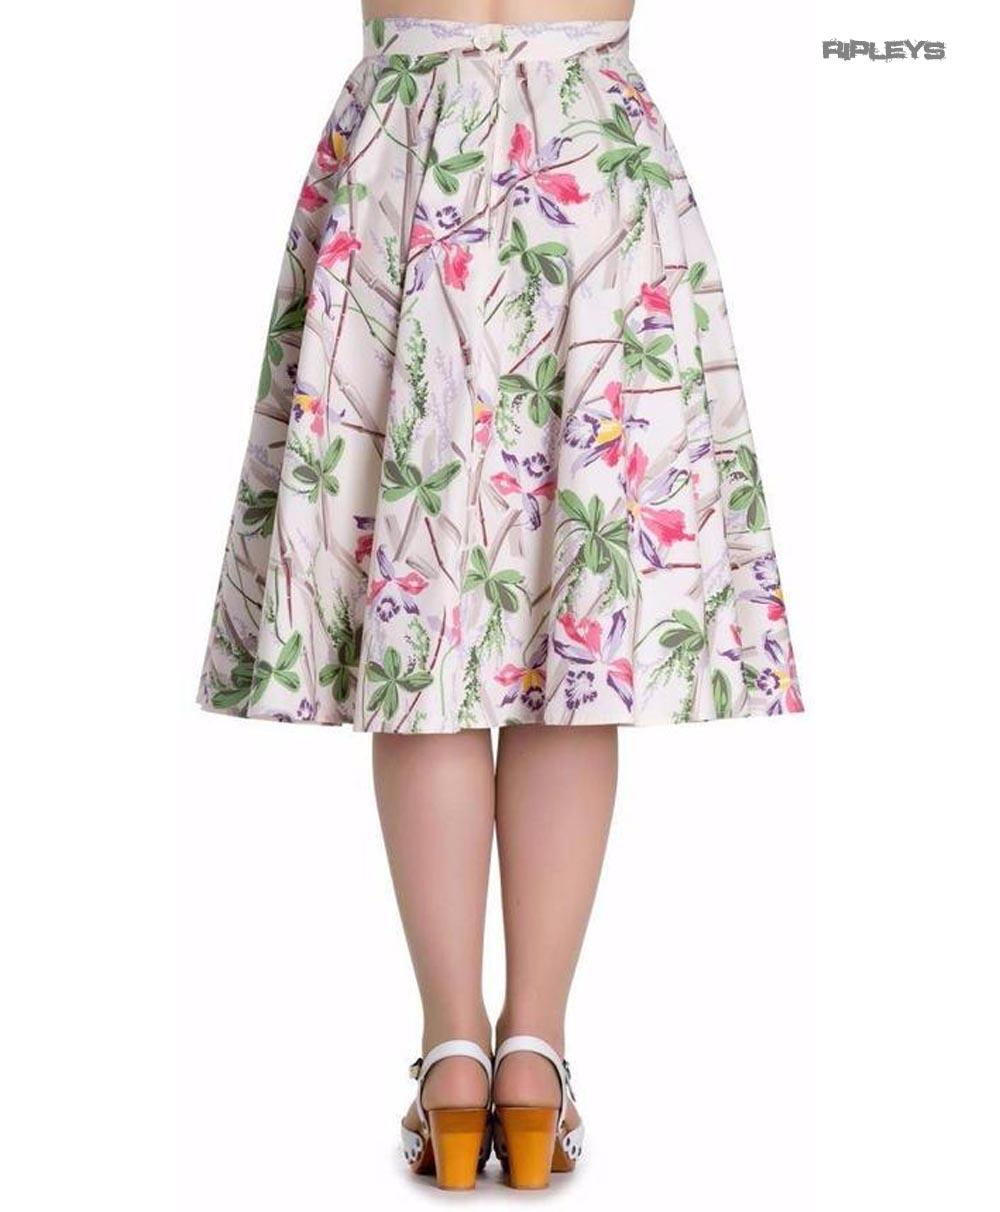 9a24953c7 Hell Bunny Pin Up Rockabilly 50s White Skirt BAMBOO Vintage Floral All Sizes